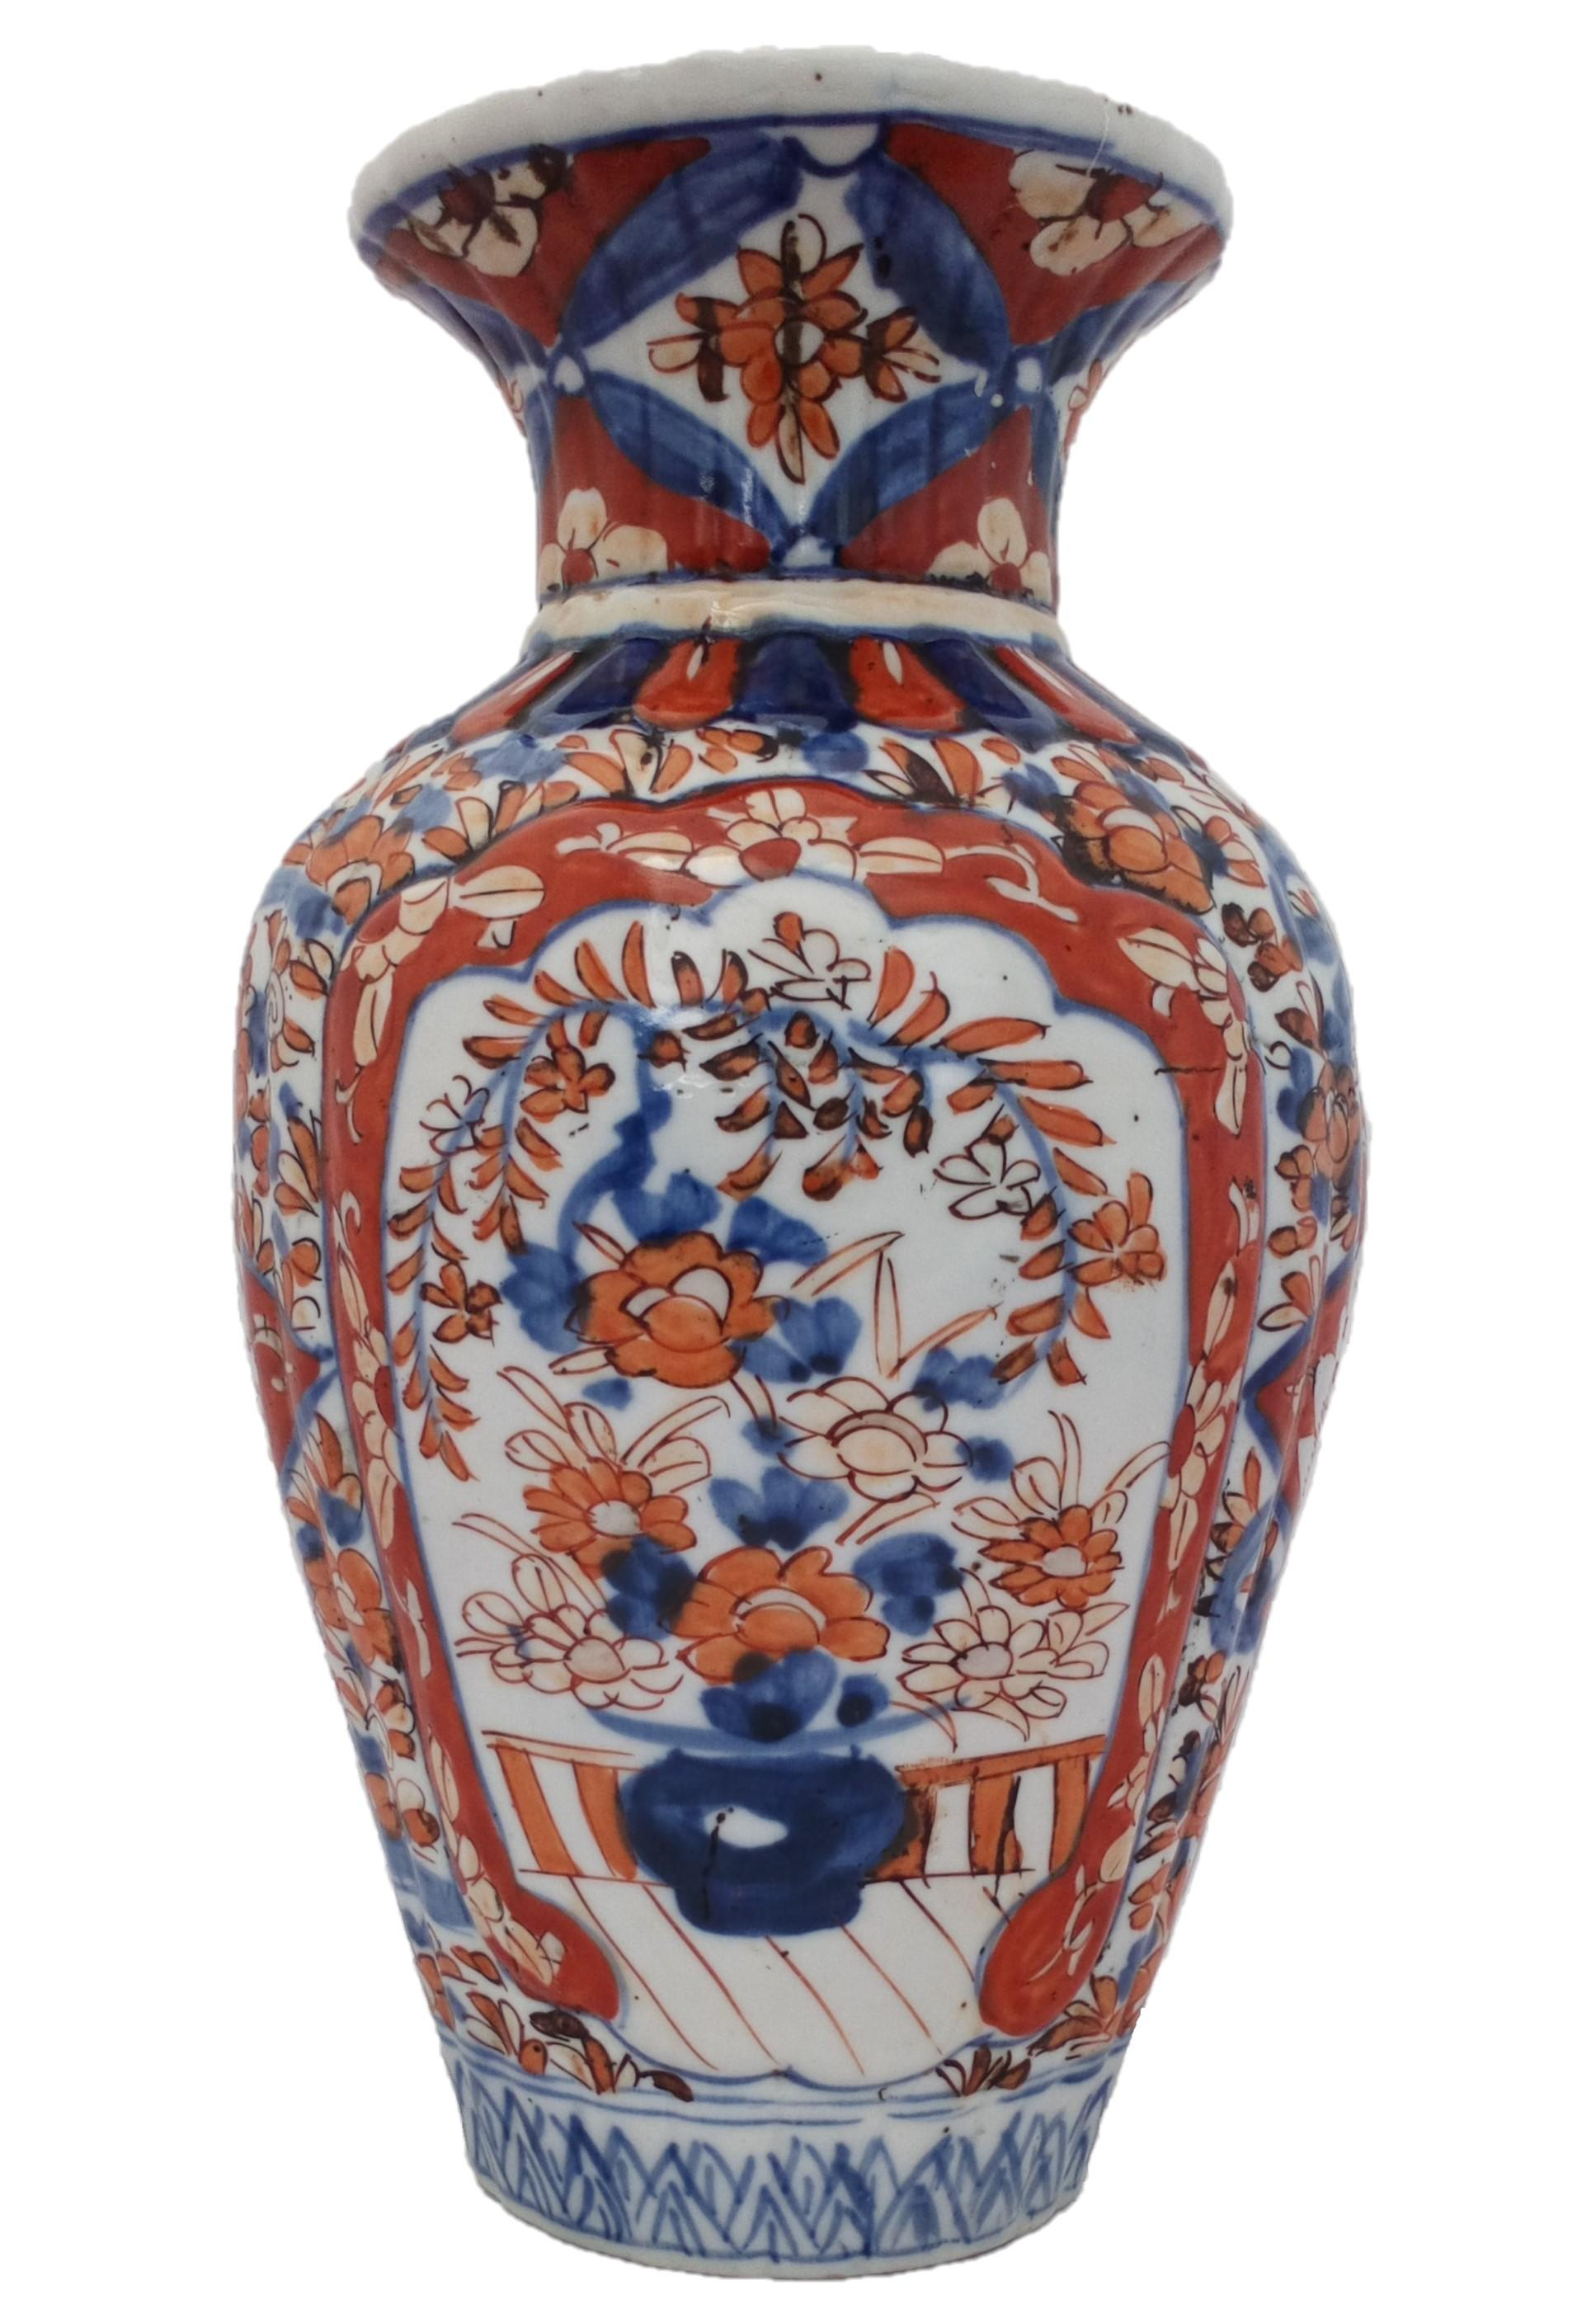 An antique Japanese Imari porcelain vase with a ribbed body hand painted 19th Century Meiji period.